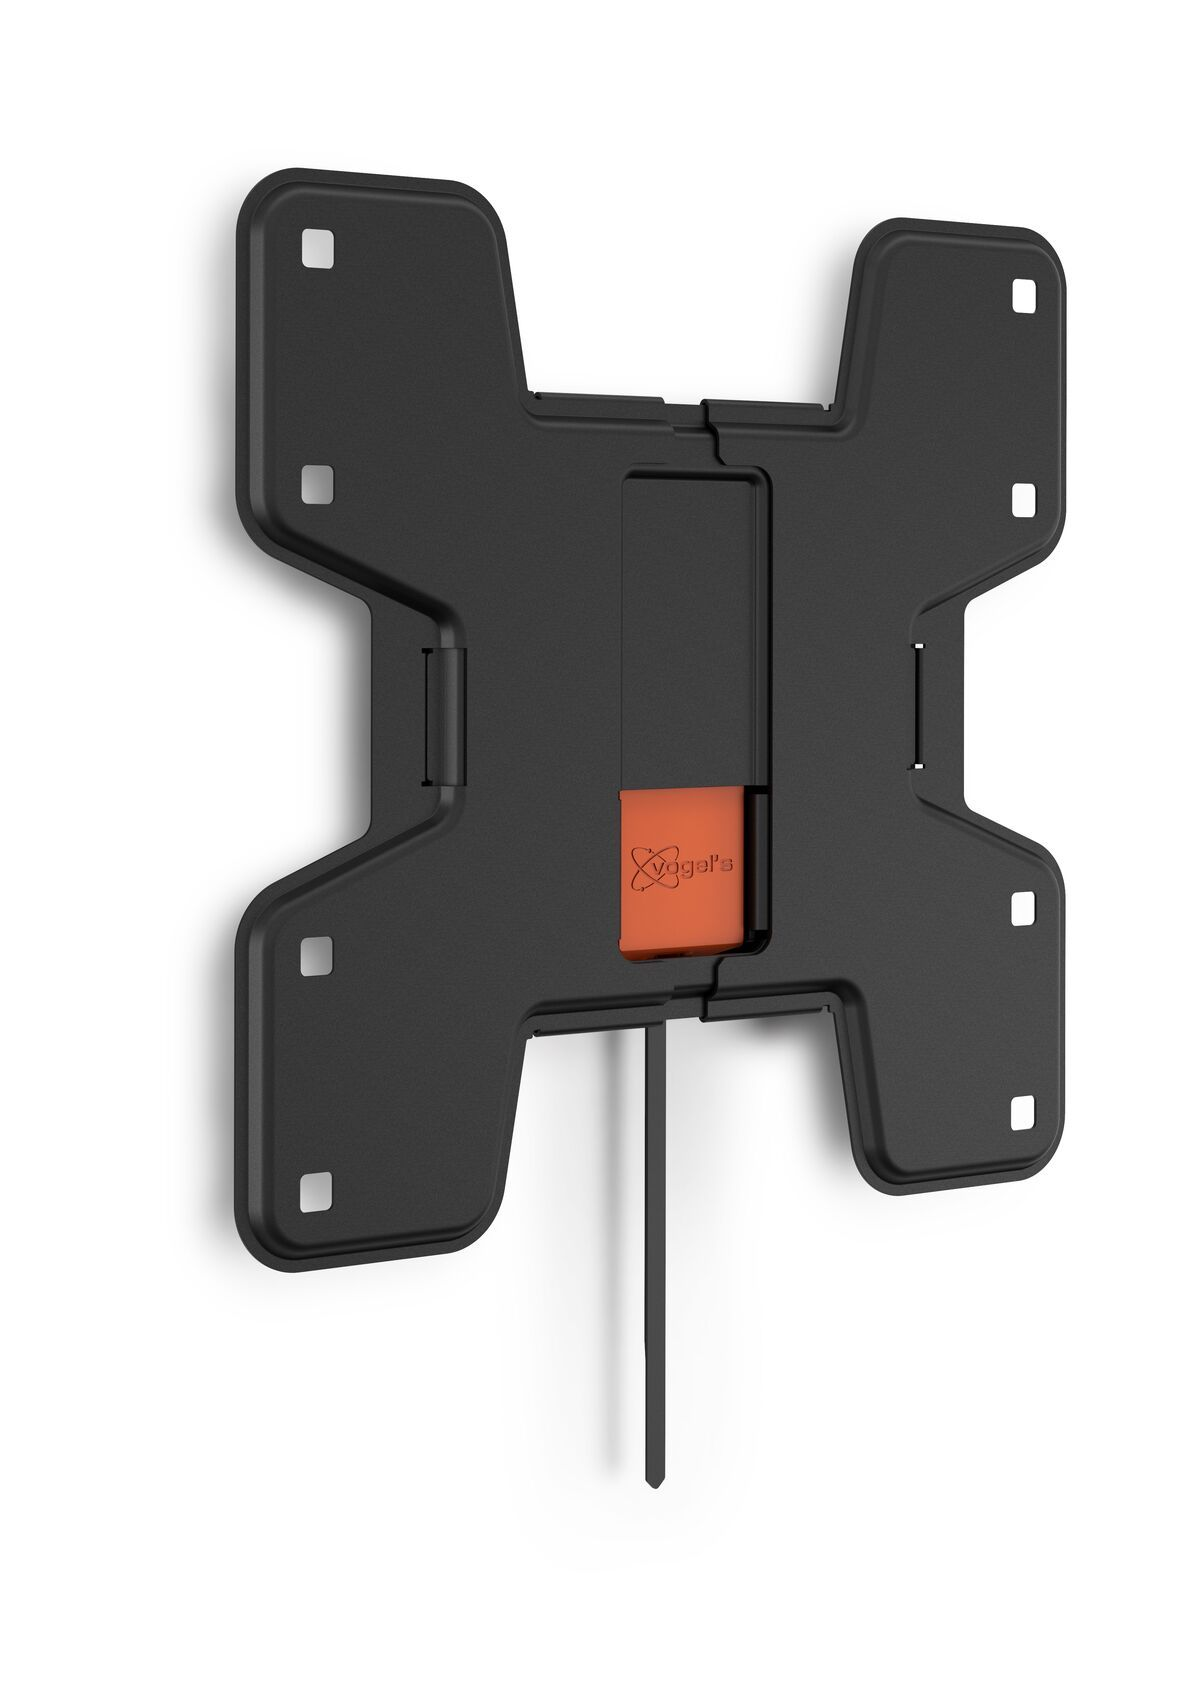 Vogel's WALL 3105 Fixed TV Wall Mount - Suitable for 19 up to 43 inch TVs up to 20 kg - Product